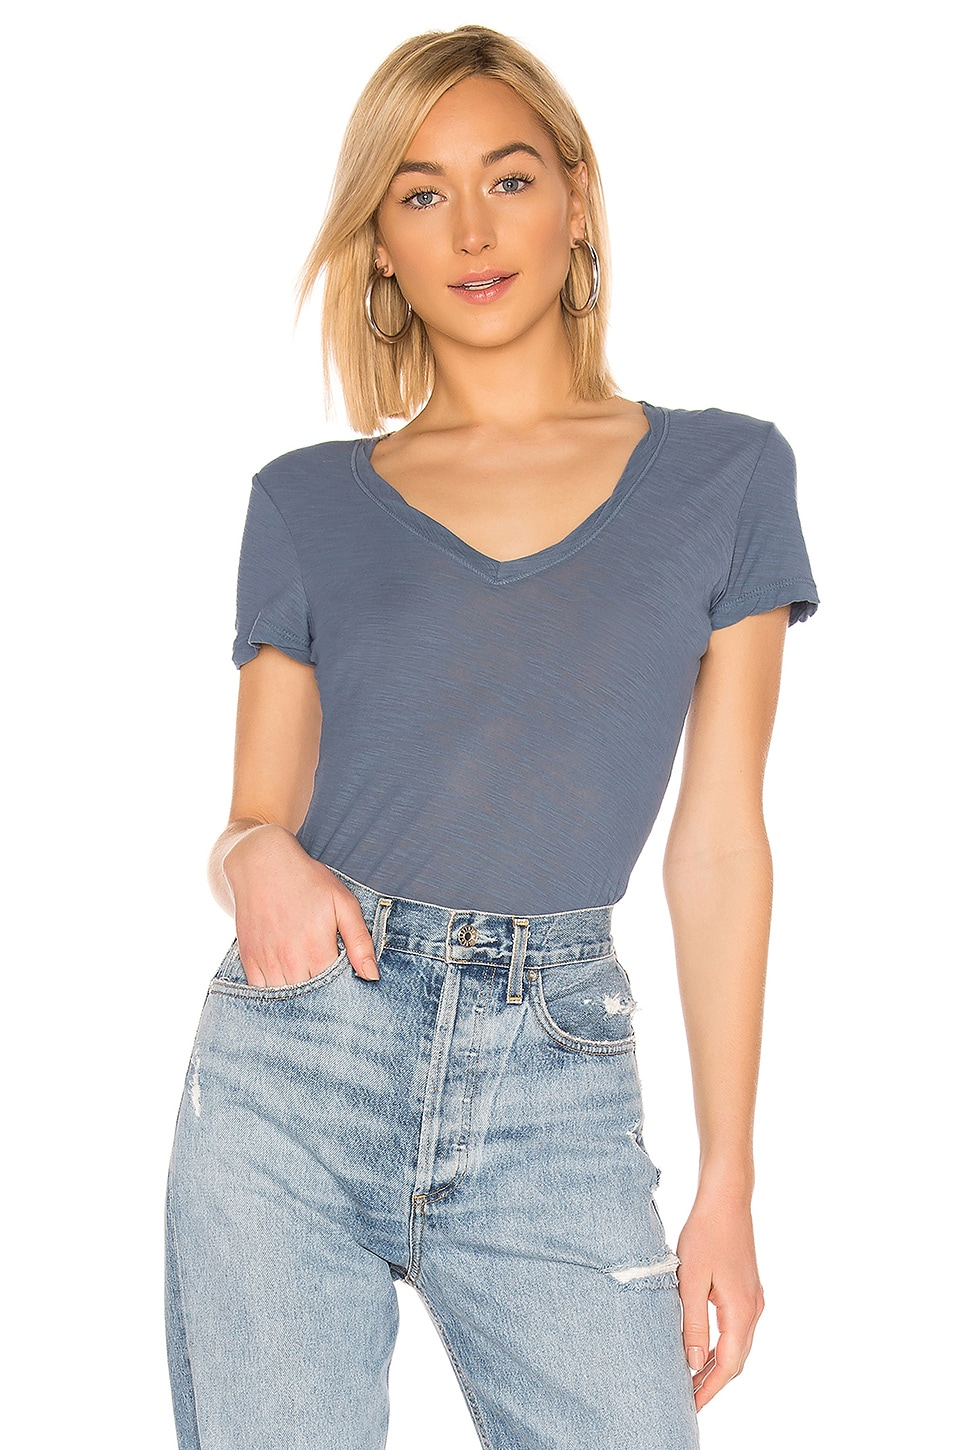 James Perse Casual Tee in Cornflower